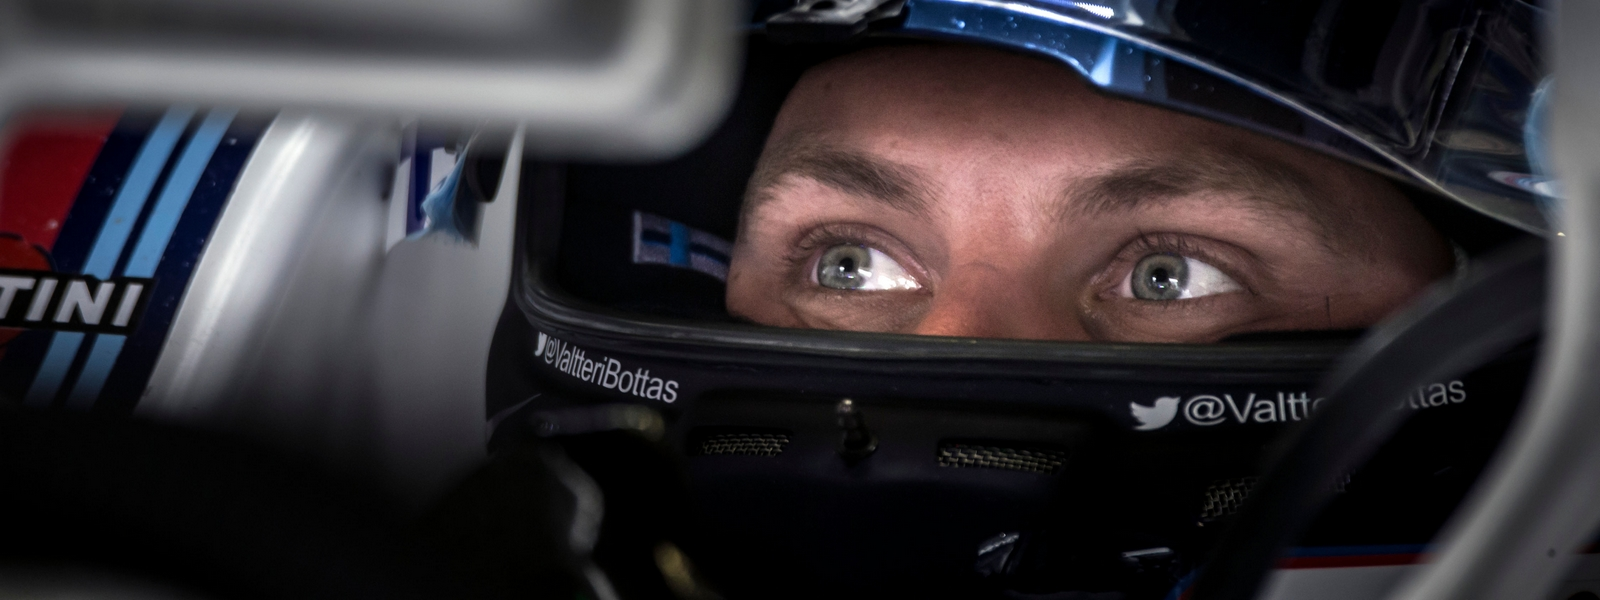 Motorsports: FIA Formula One World Championship 2016, Grand Prix of Mexico,  #77 Valtteri Bottas (FIN, Williams Martini Racing),  *** Local Caption *** +++ www.hoch-zwei.net +++ copyright: HOCH ZWEI +++